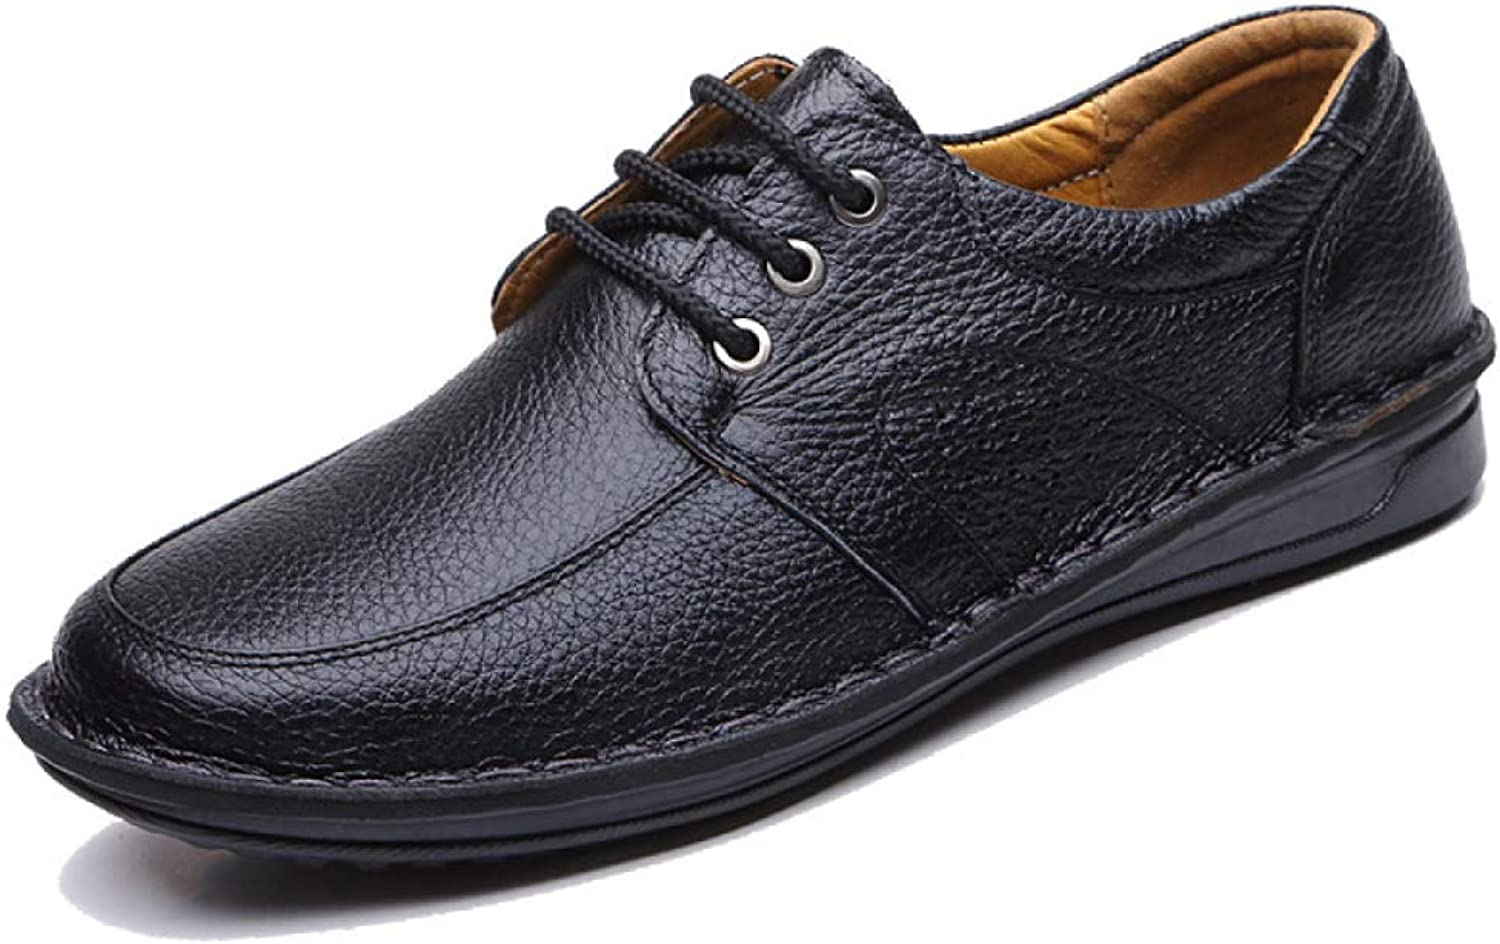 Men's shoes Fashion Casual shoes Sewing In The Elderly Wear-resistant Non-slip